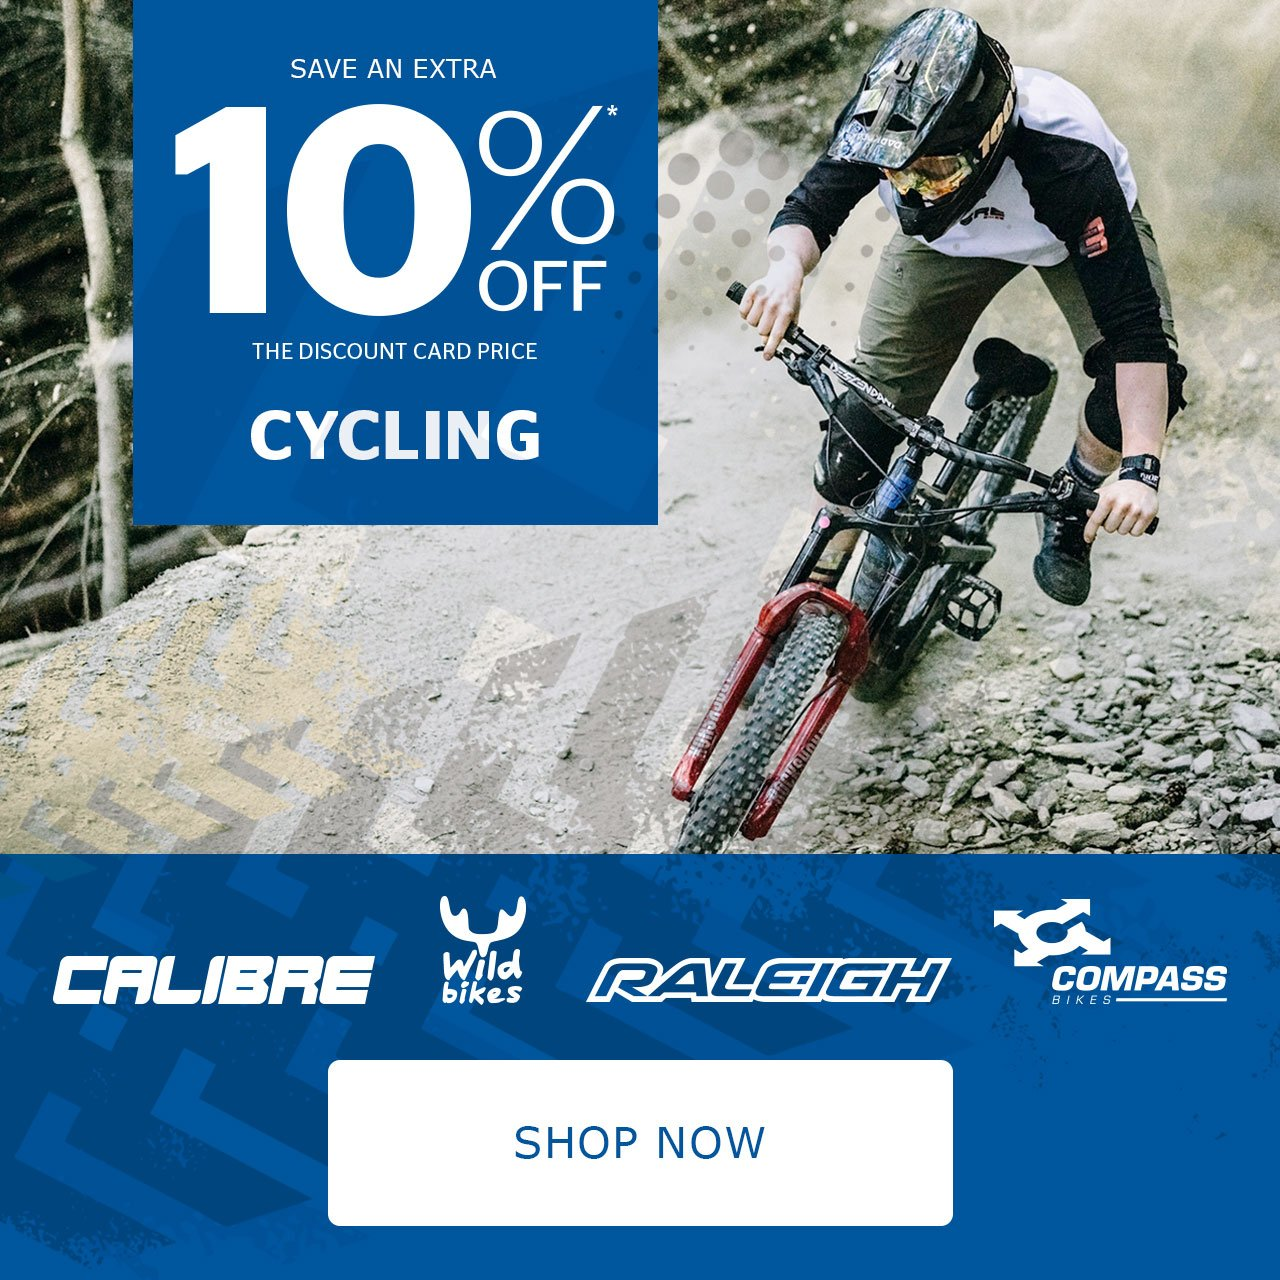 Save an extra 10% off Camping